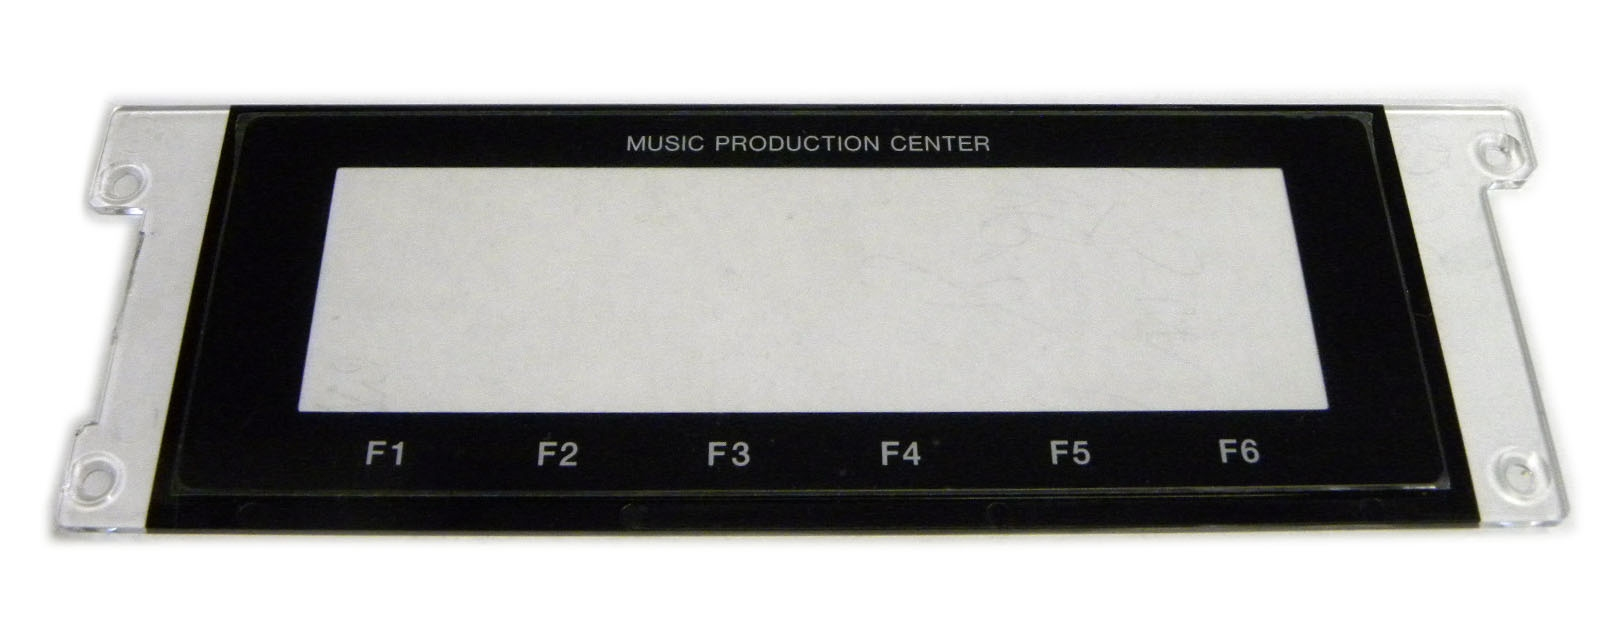 Akai LCD window for MPC1000 in Black